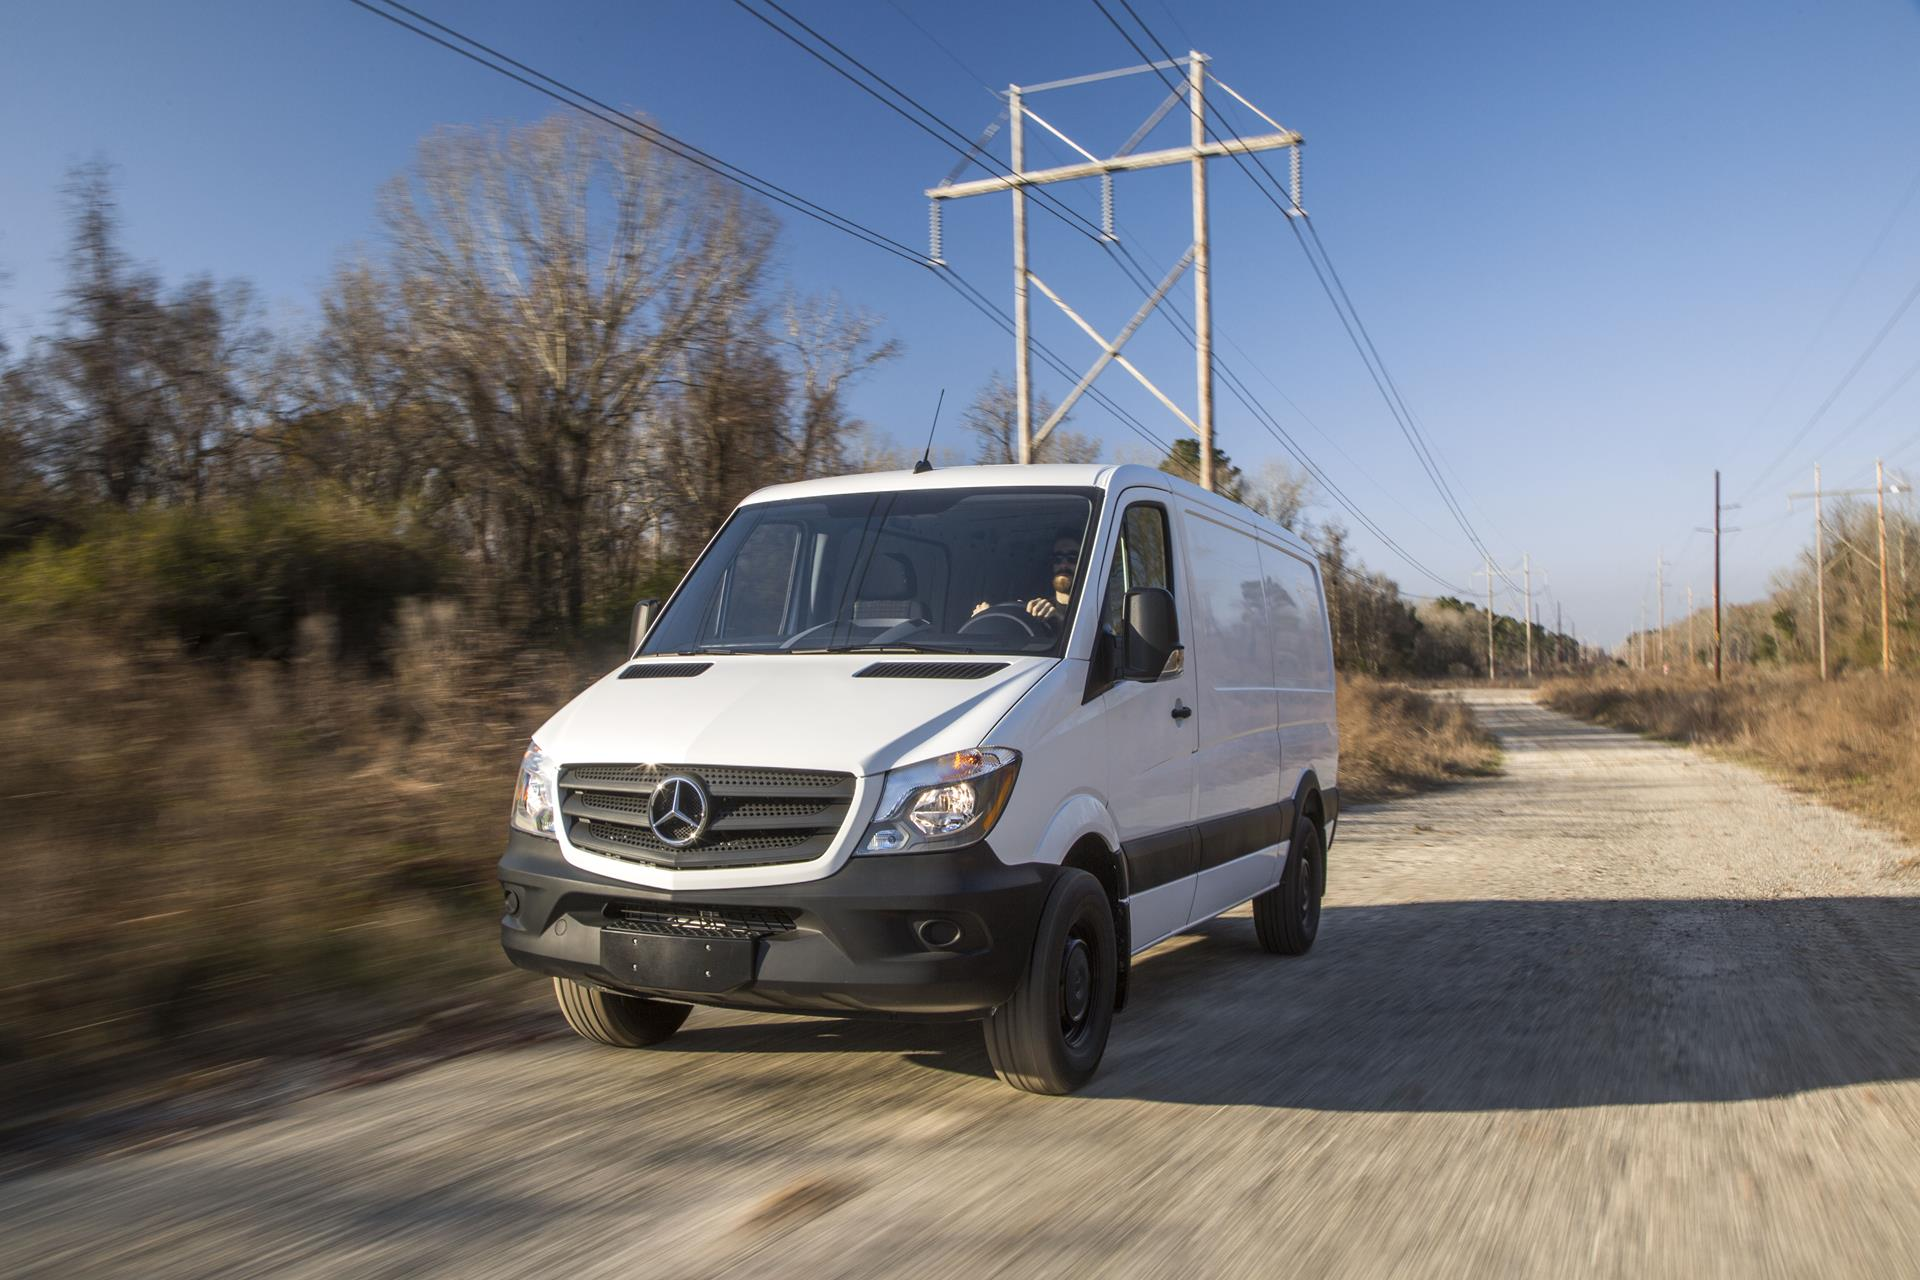 2016 mercedes benz sprinter for Sprinter mercedes benz 2016